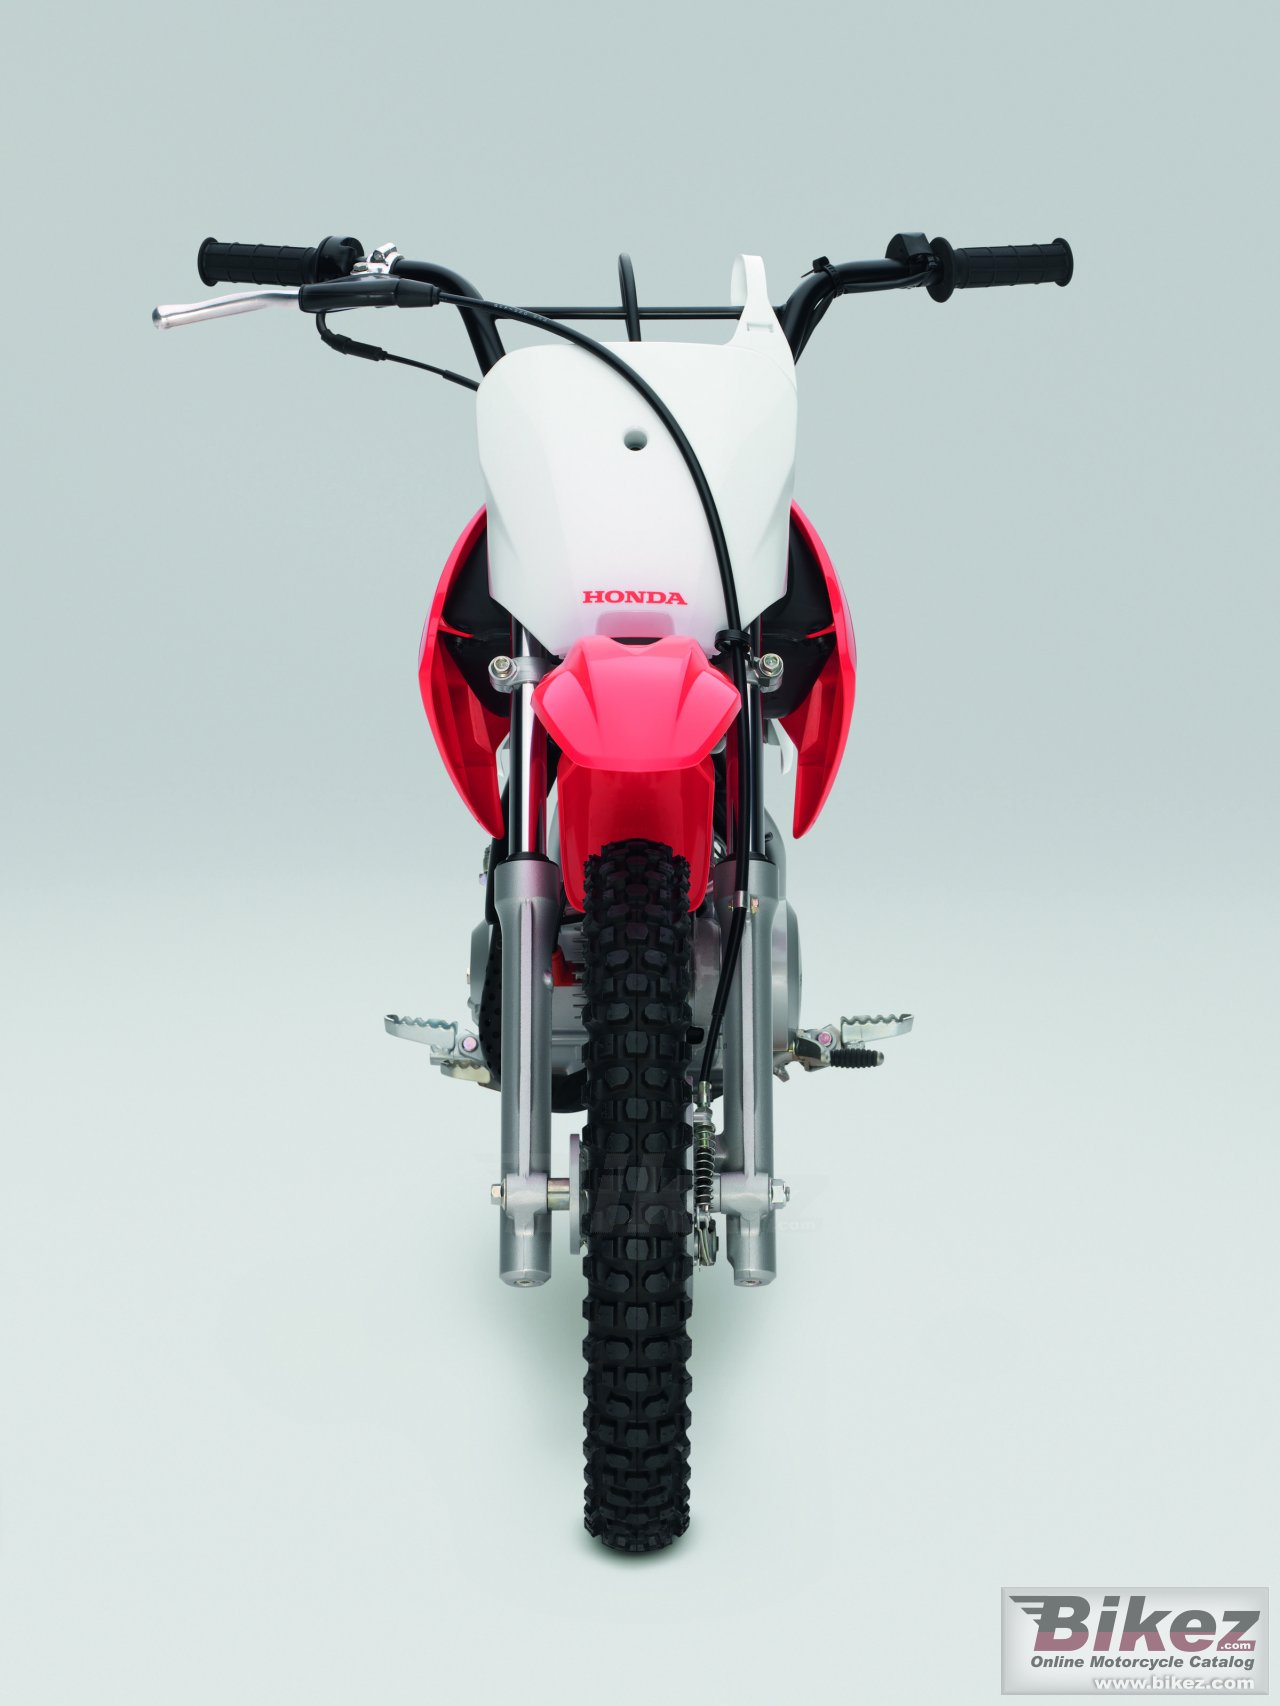 Big Honda crf70f picture and wallpaper from Bikez.com